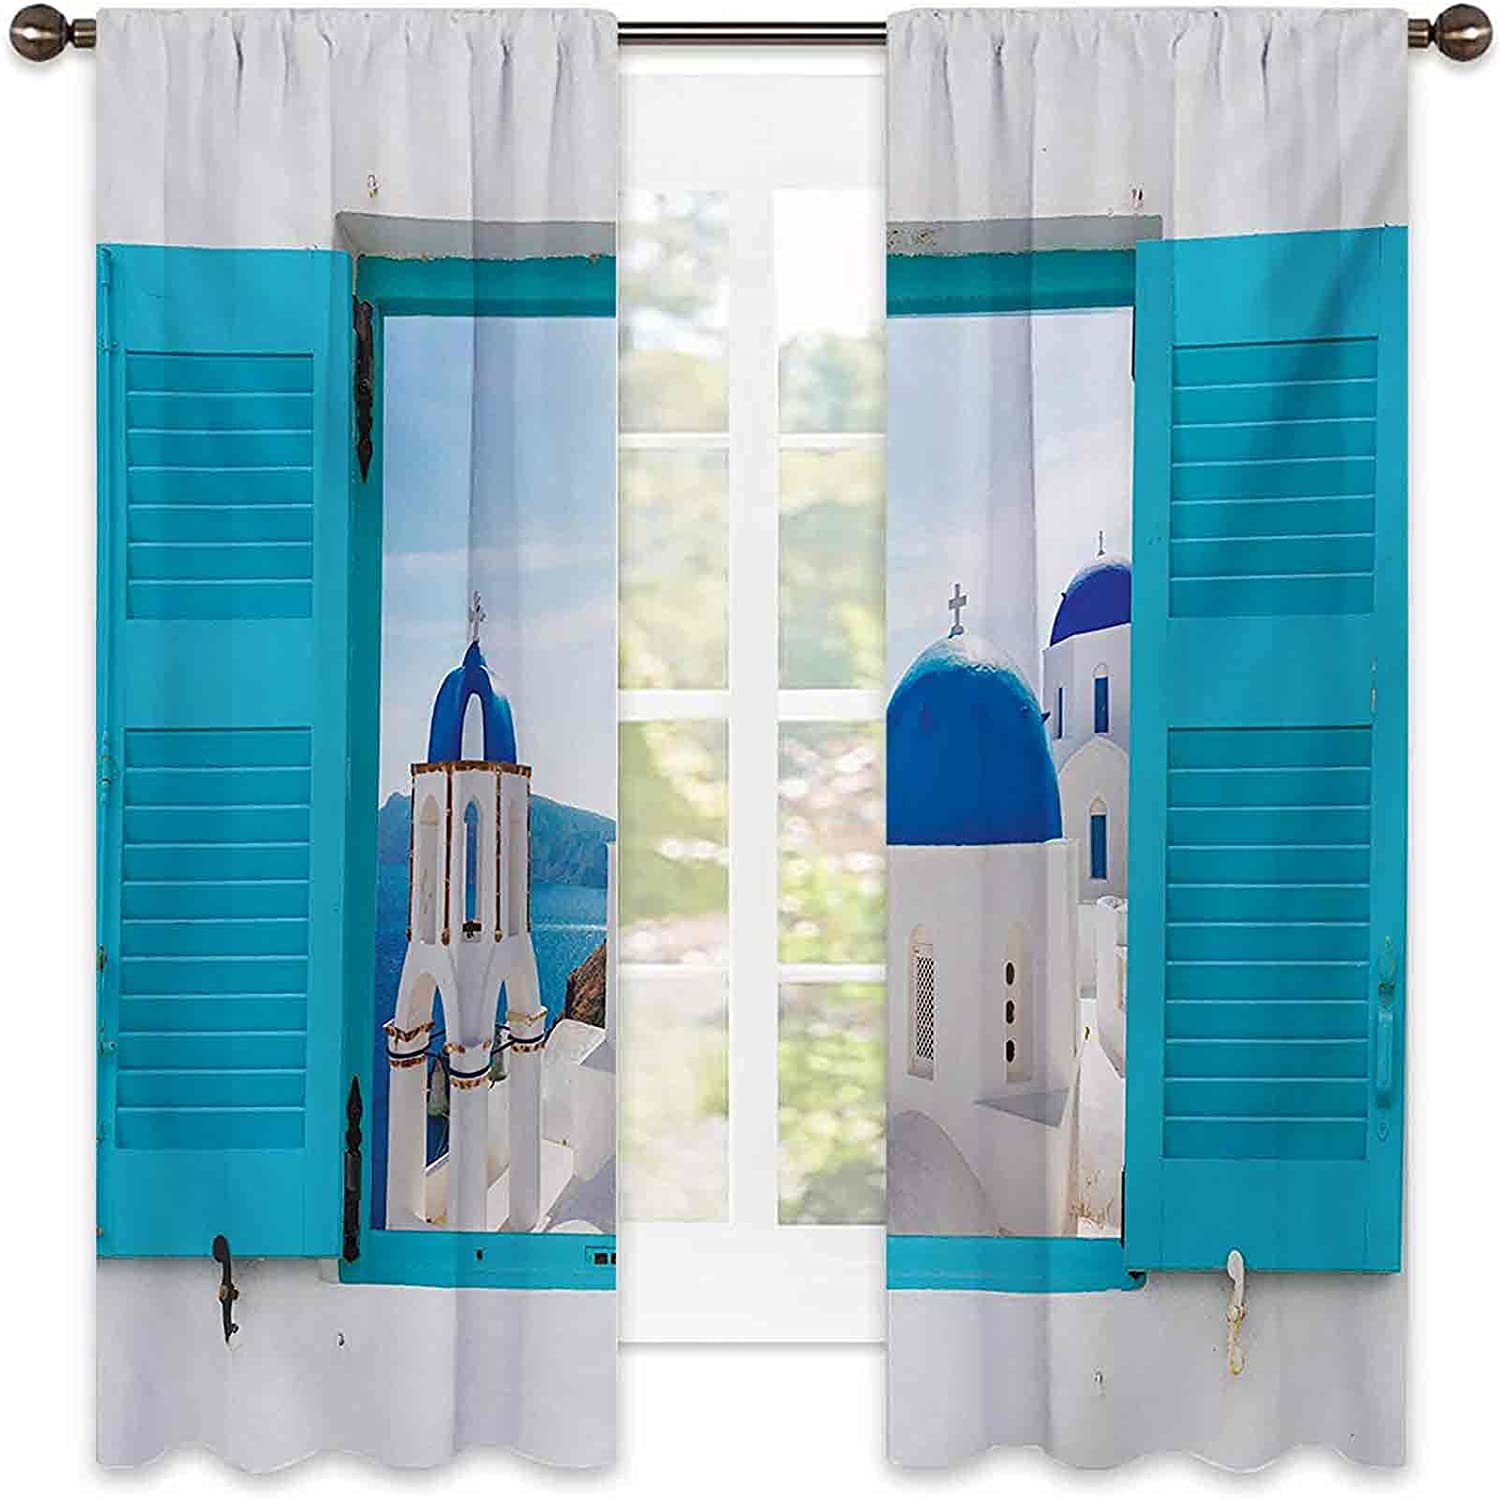 Landscape Shading Insulated Curtain Window with Directly managed store View Classic Latest item of